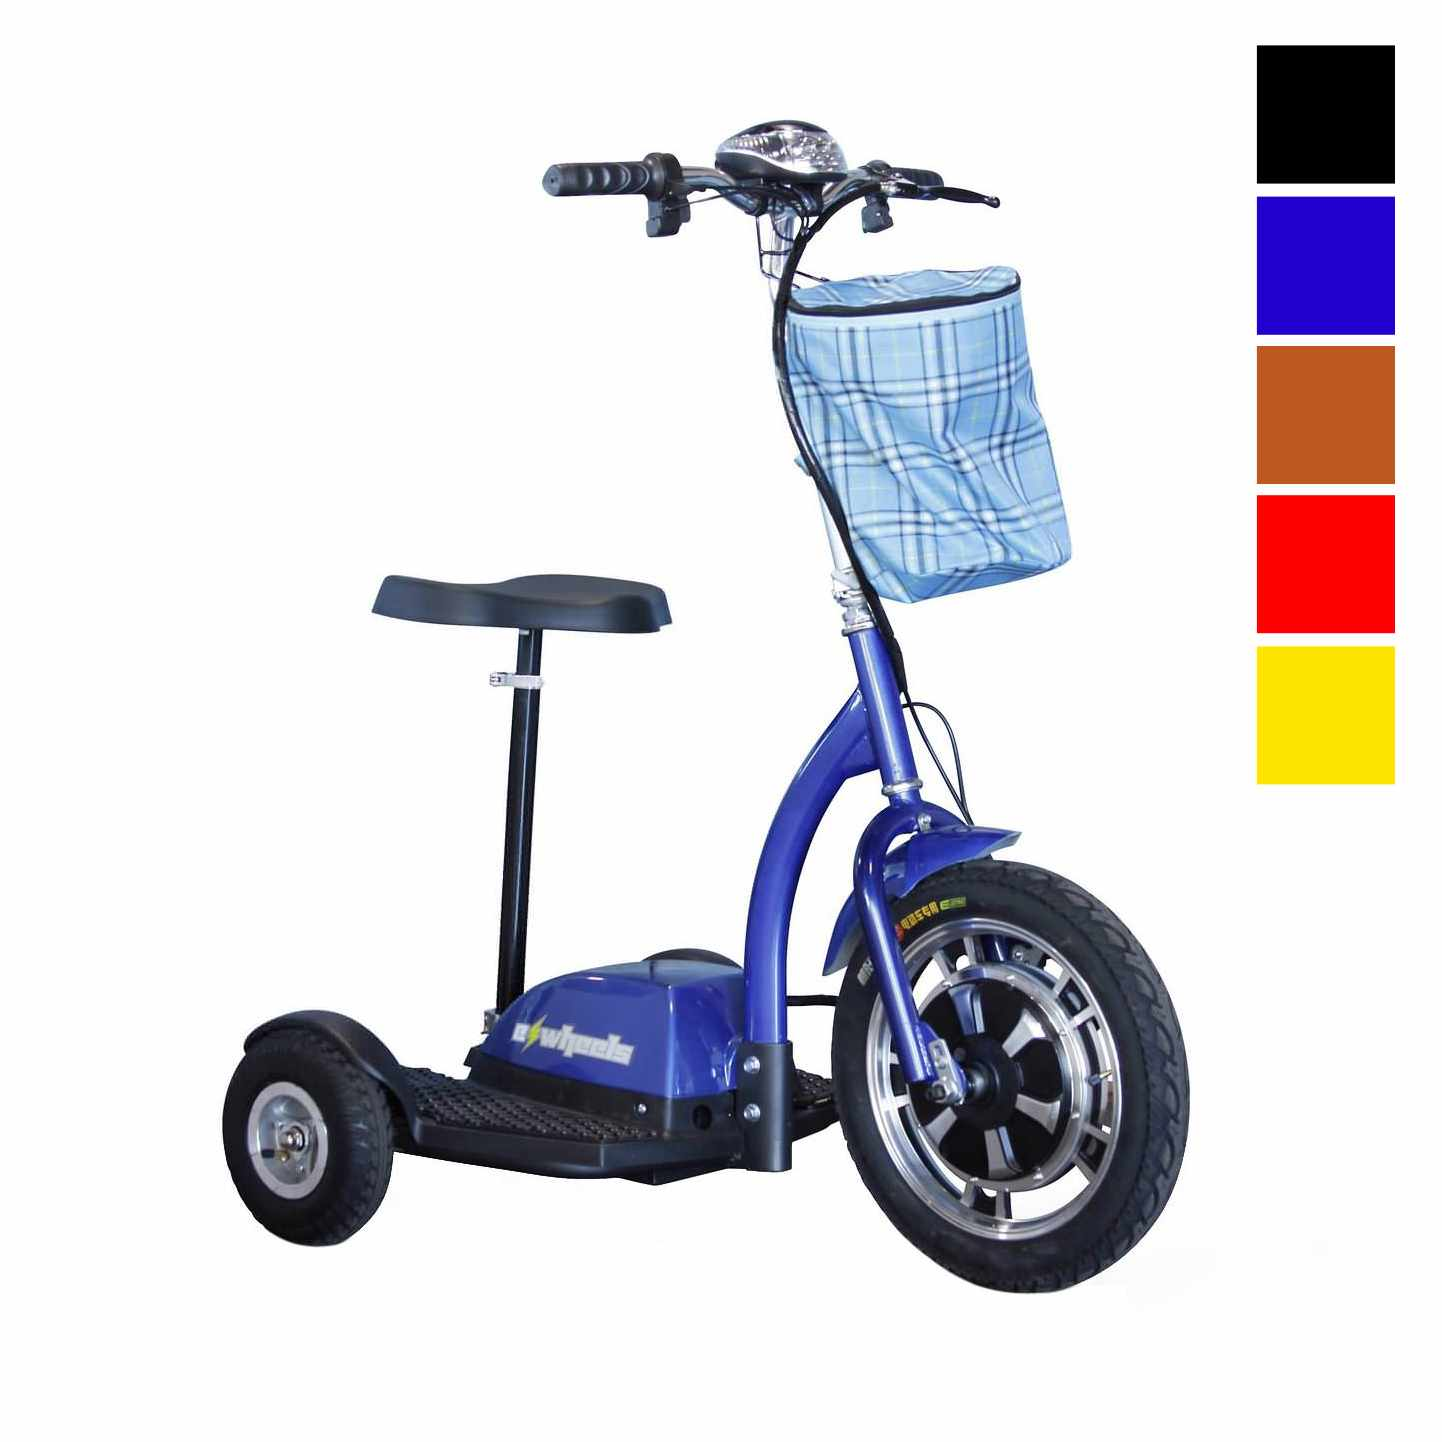 EWheels EW-18 Stand-n-Ride folding mobility scooter - Blue